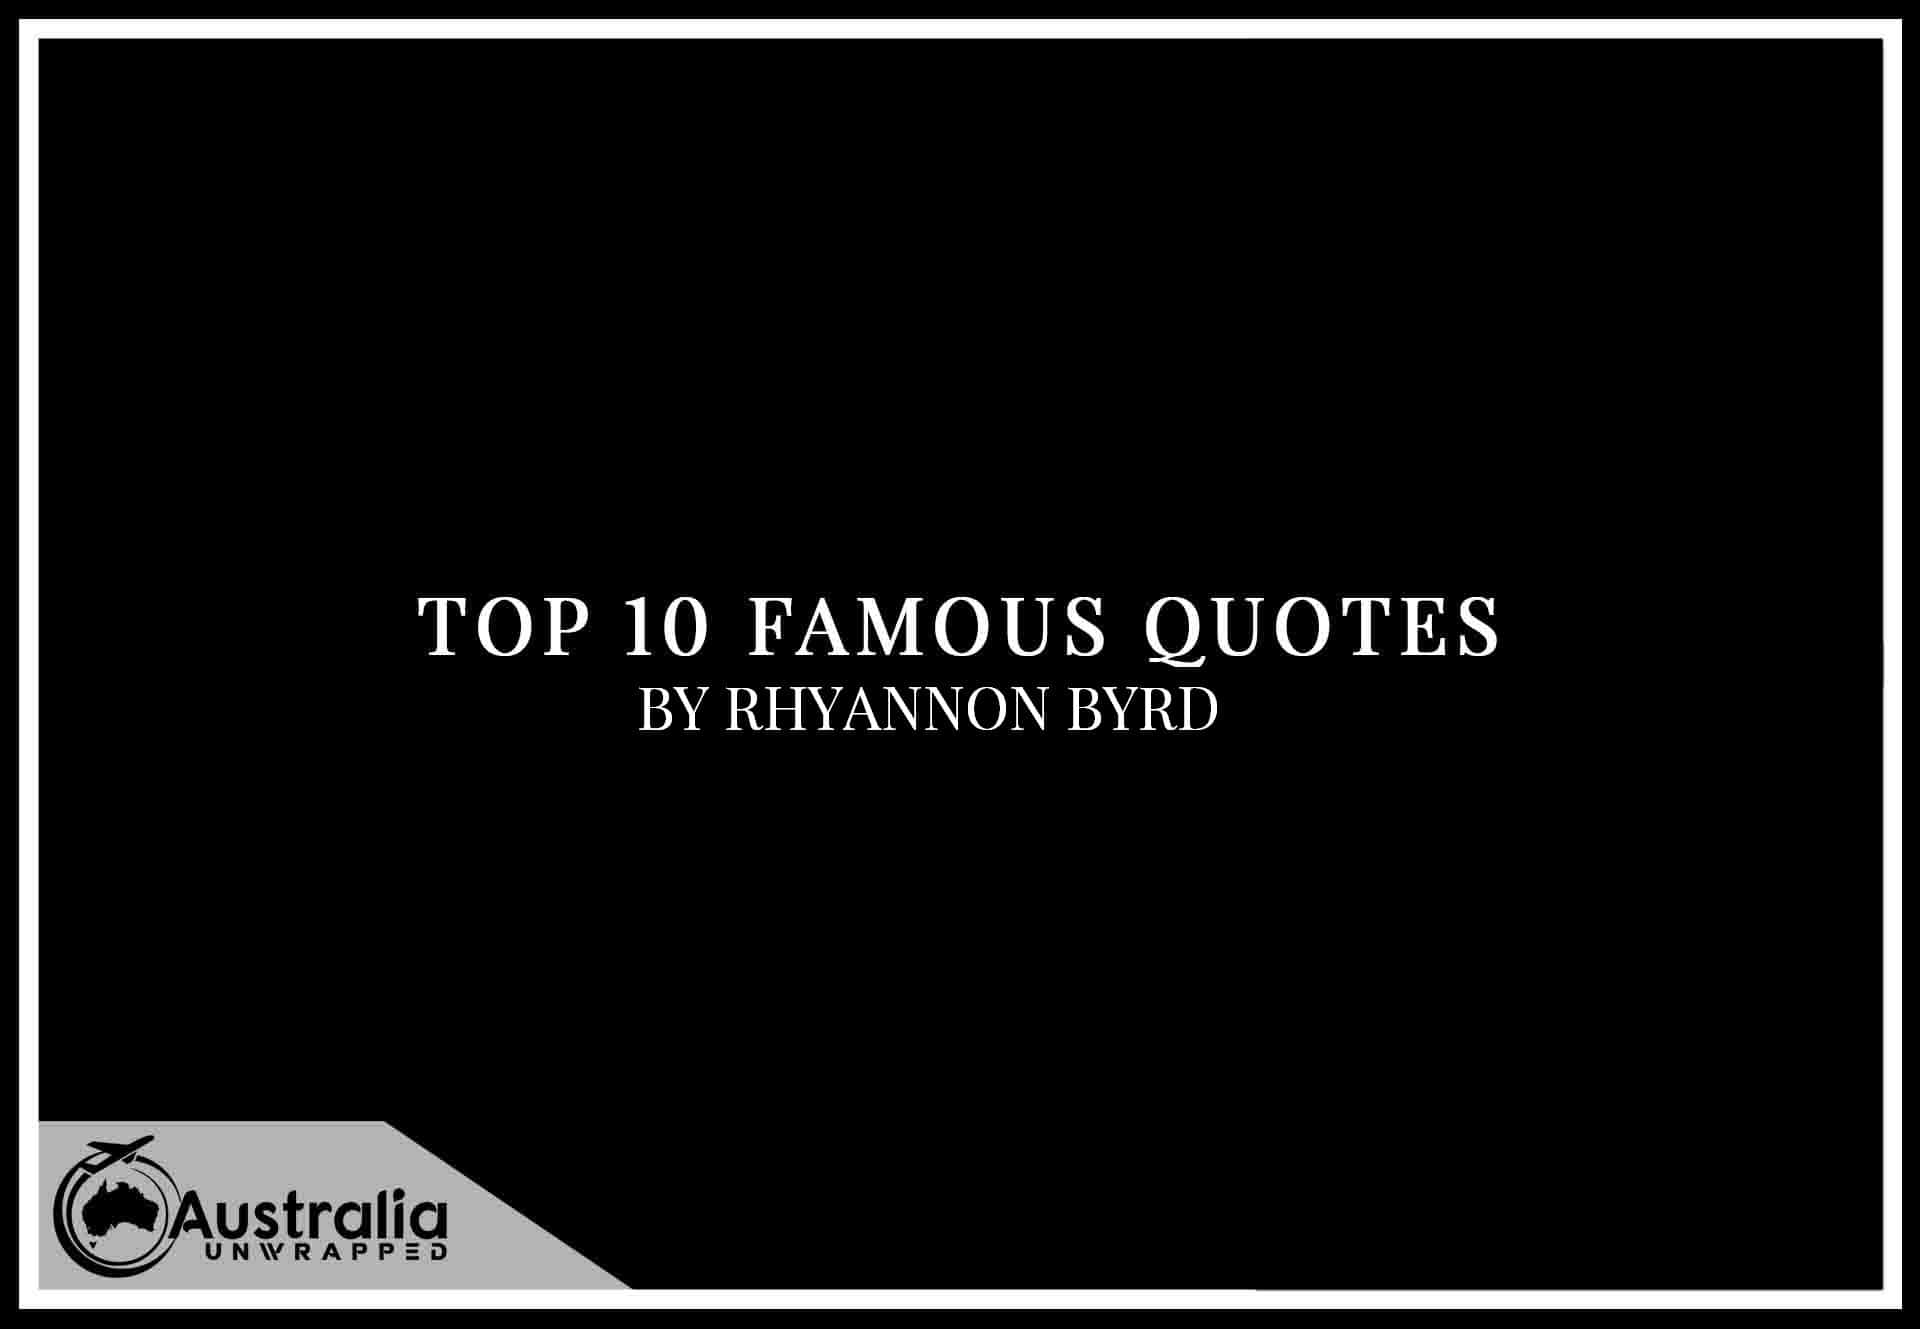 Rhyannon Byrd's Top 10 Popular and Famous Quotes